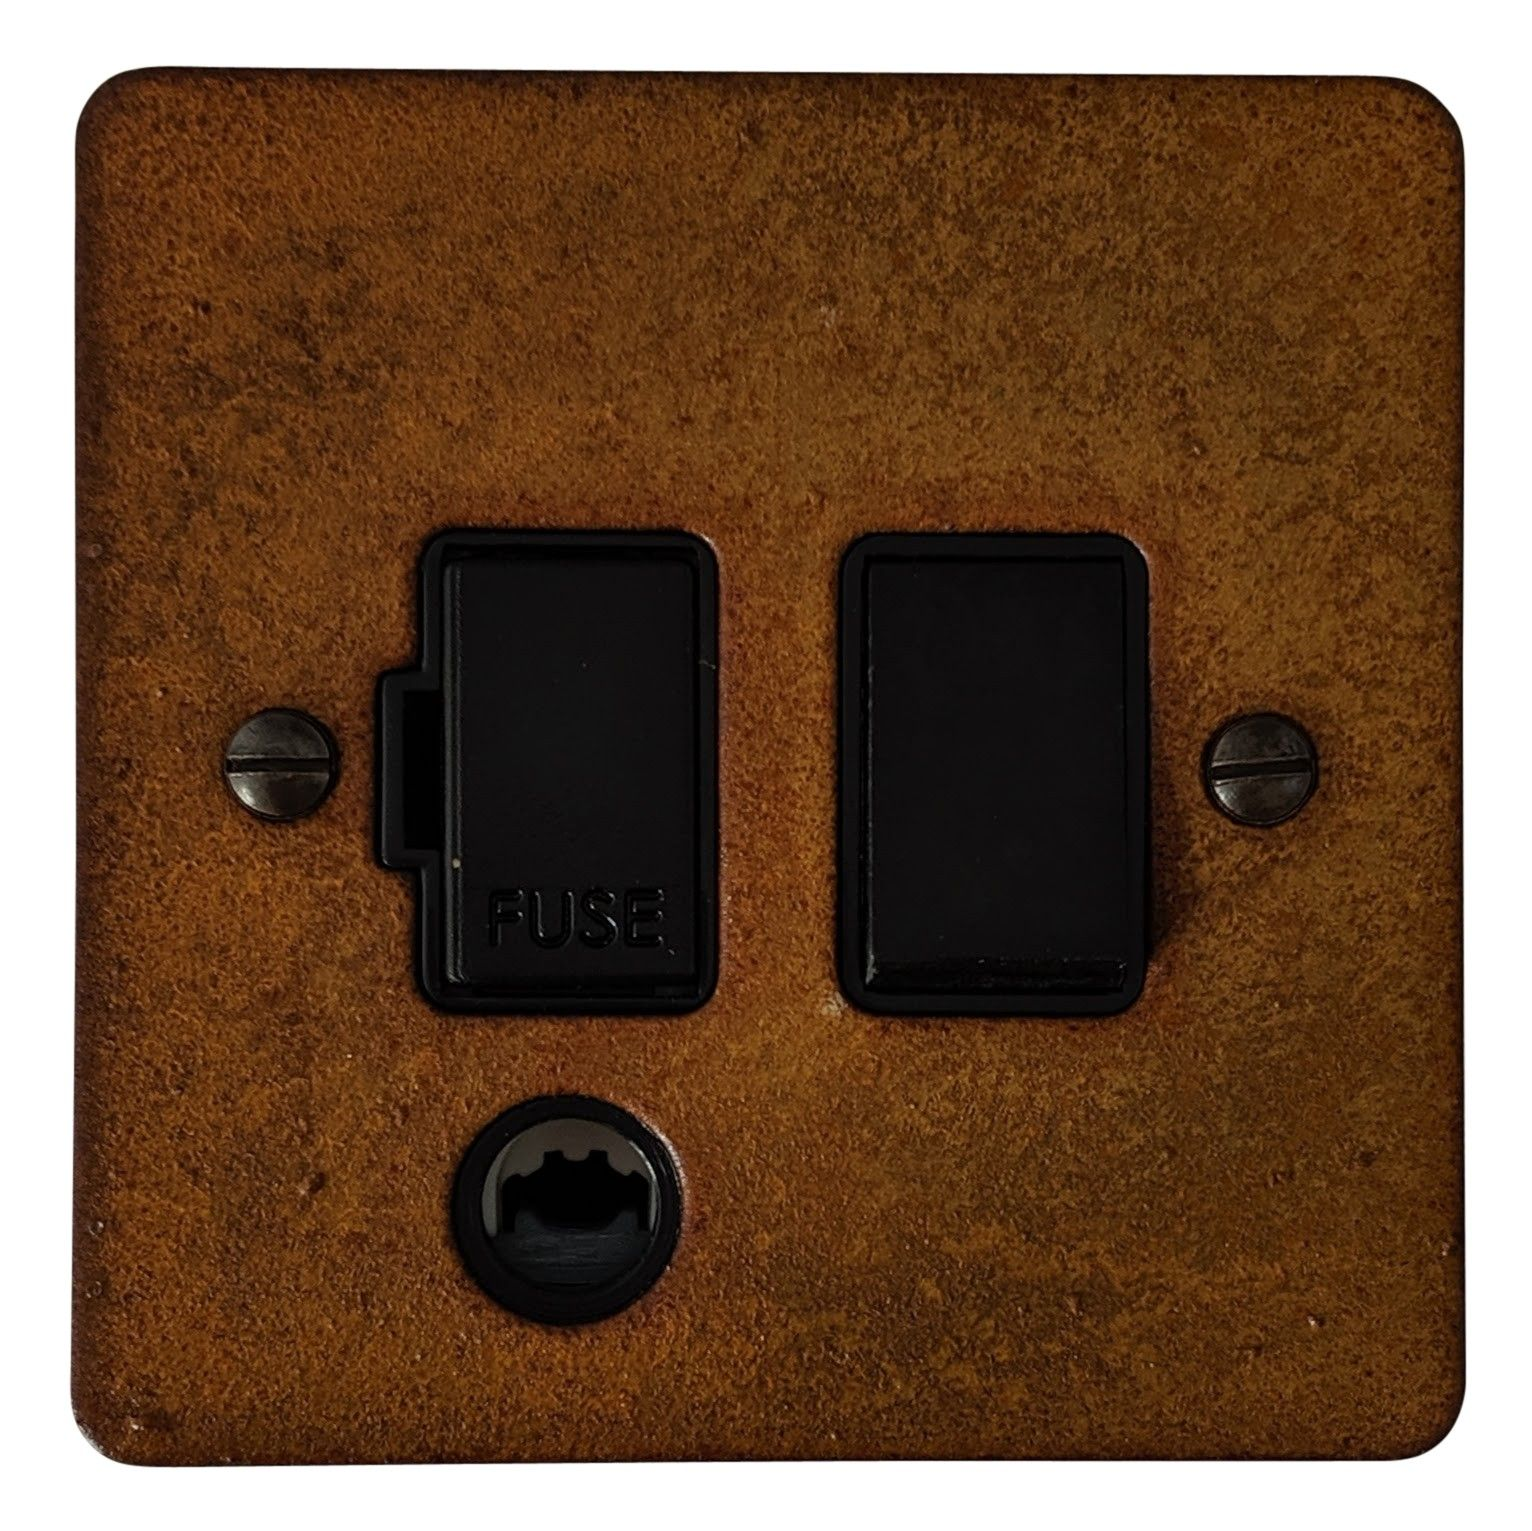 G&H FRT56B Flat Plate Rust 1 Gang Fused Spur 13A Switched & Flex Outlet